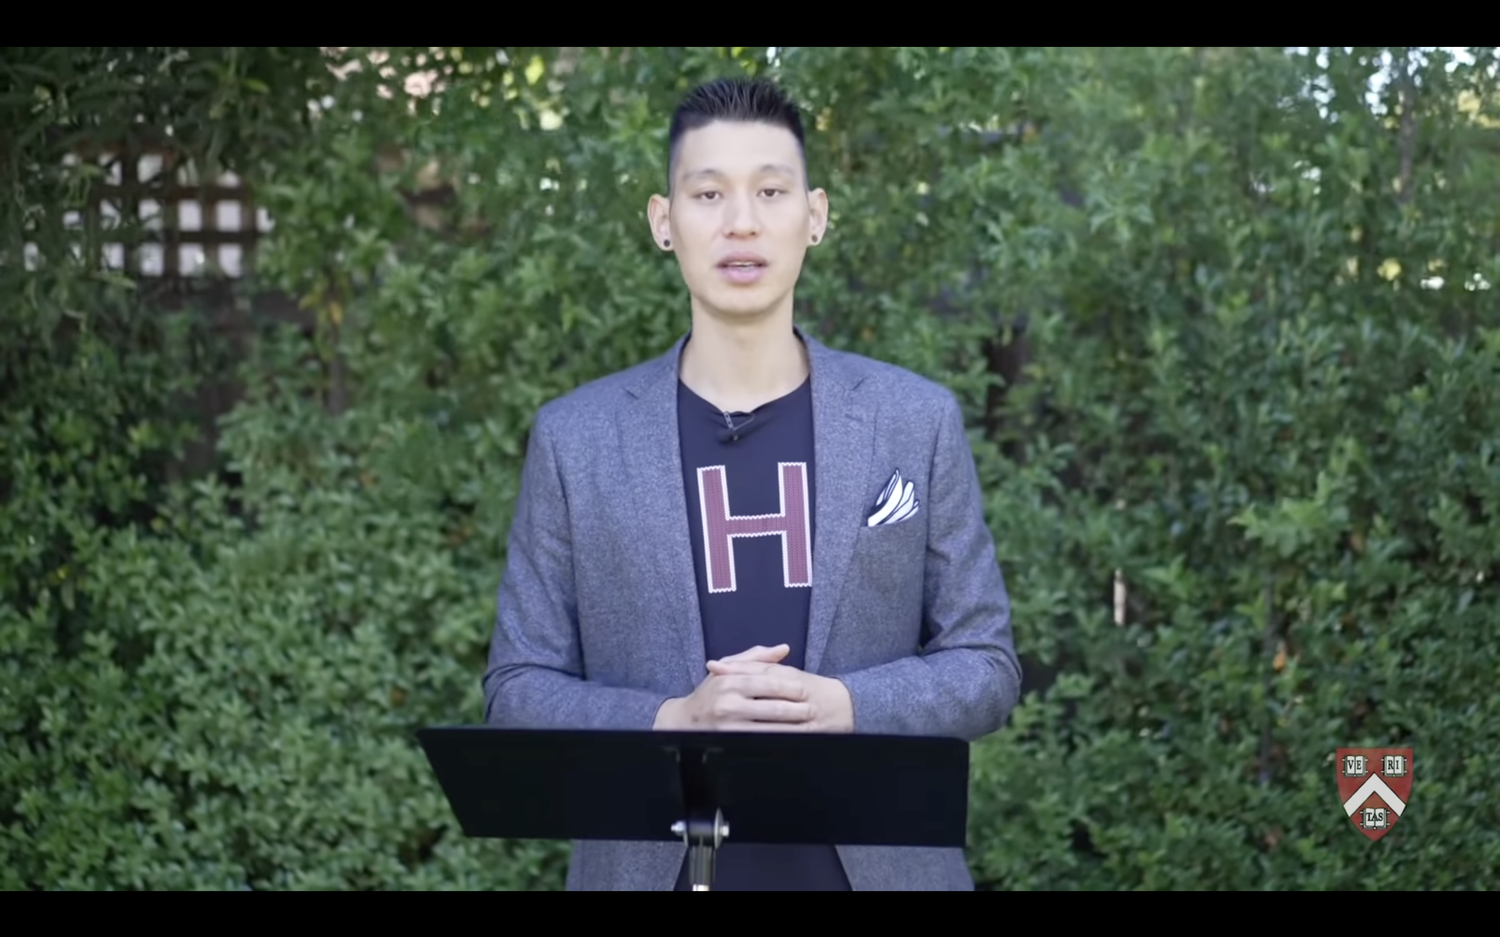 'When I was first asked to speak at Class Day, in true student-athlete fashion, I tried to turn down this extra writing assignment,' Jeremy Lin '10 quipped in his Class Day address Wednesday.